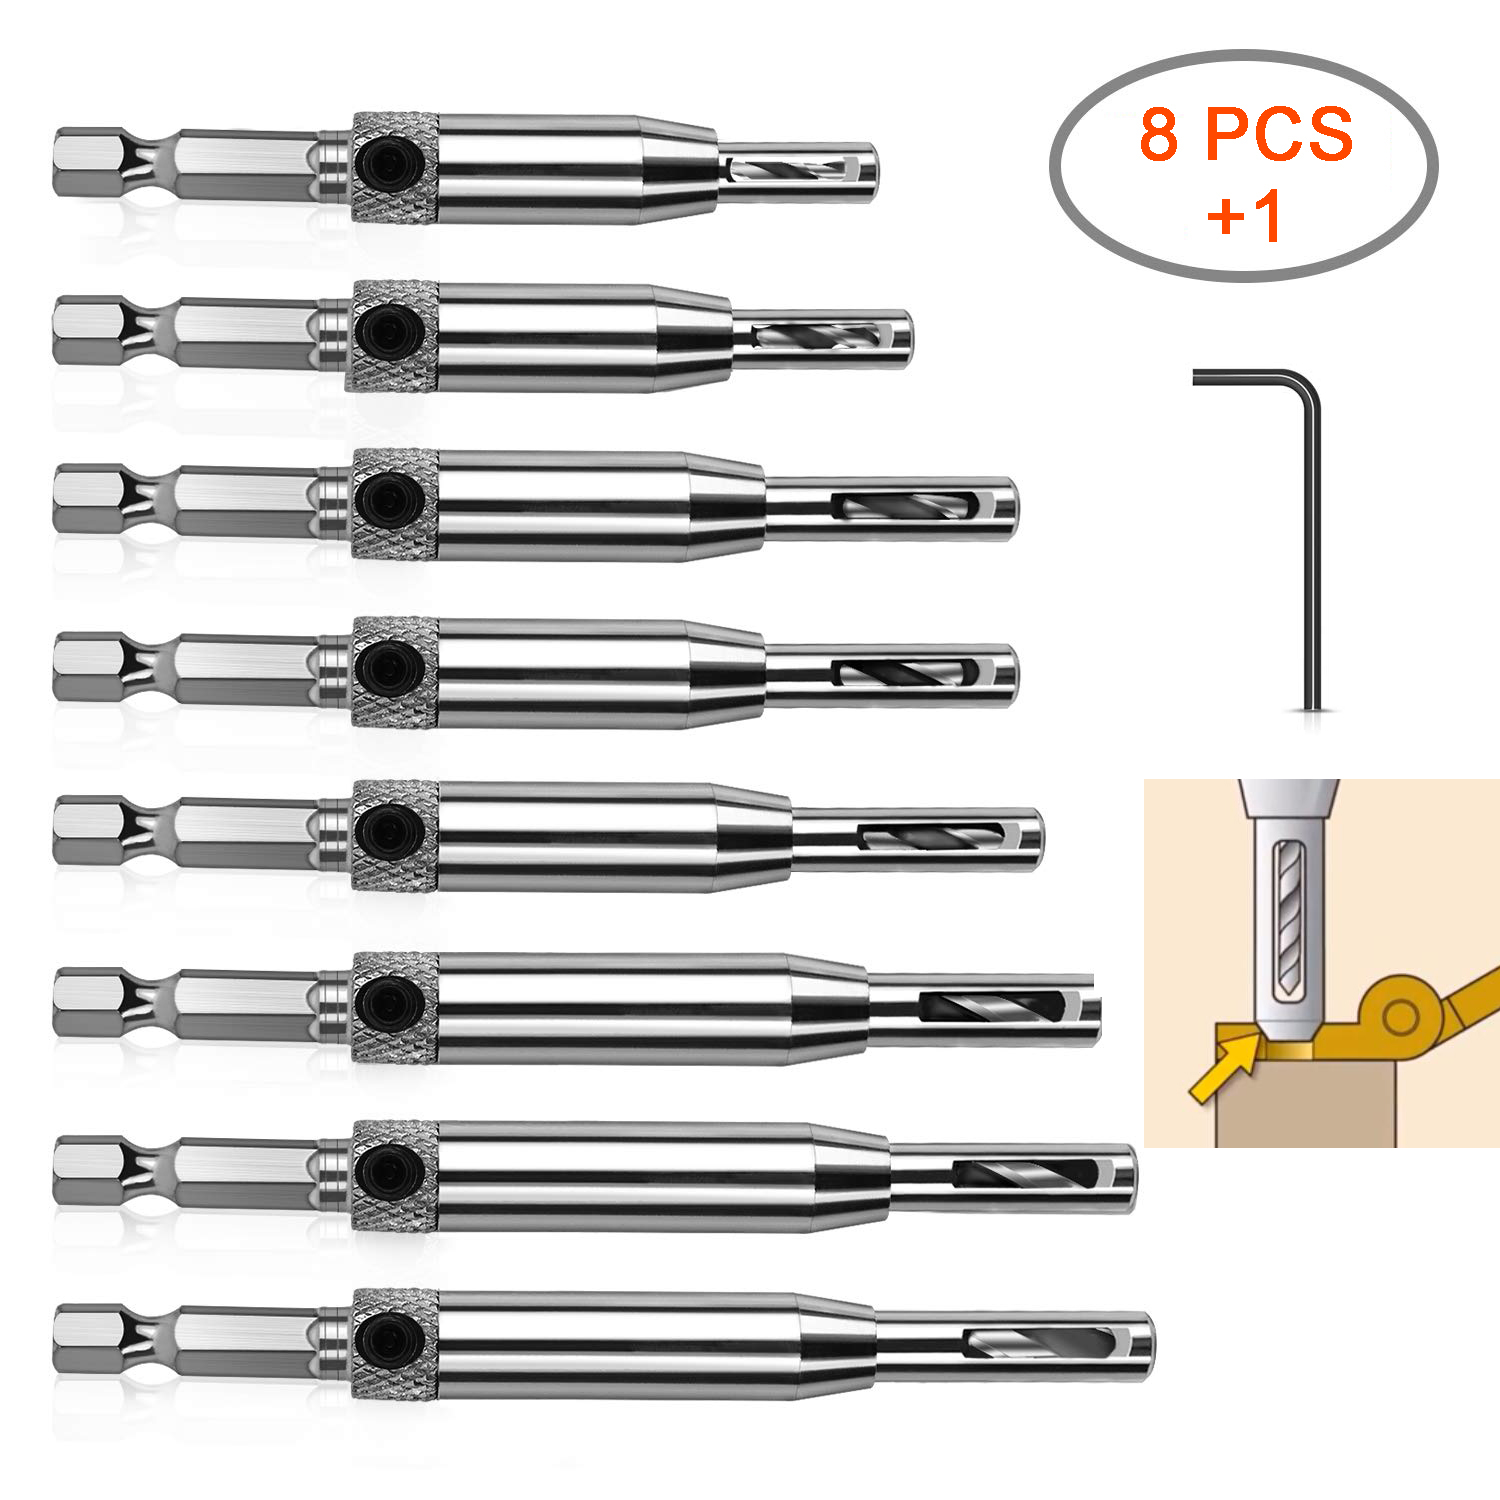 "8PCS/Set Hinge Drill Bits 1/4"" Shank Self Centering Window Door Hinge Twist Wood Drill Bits"